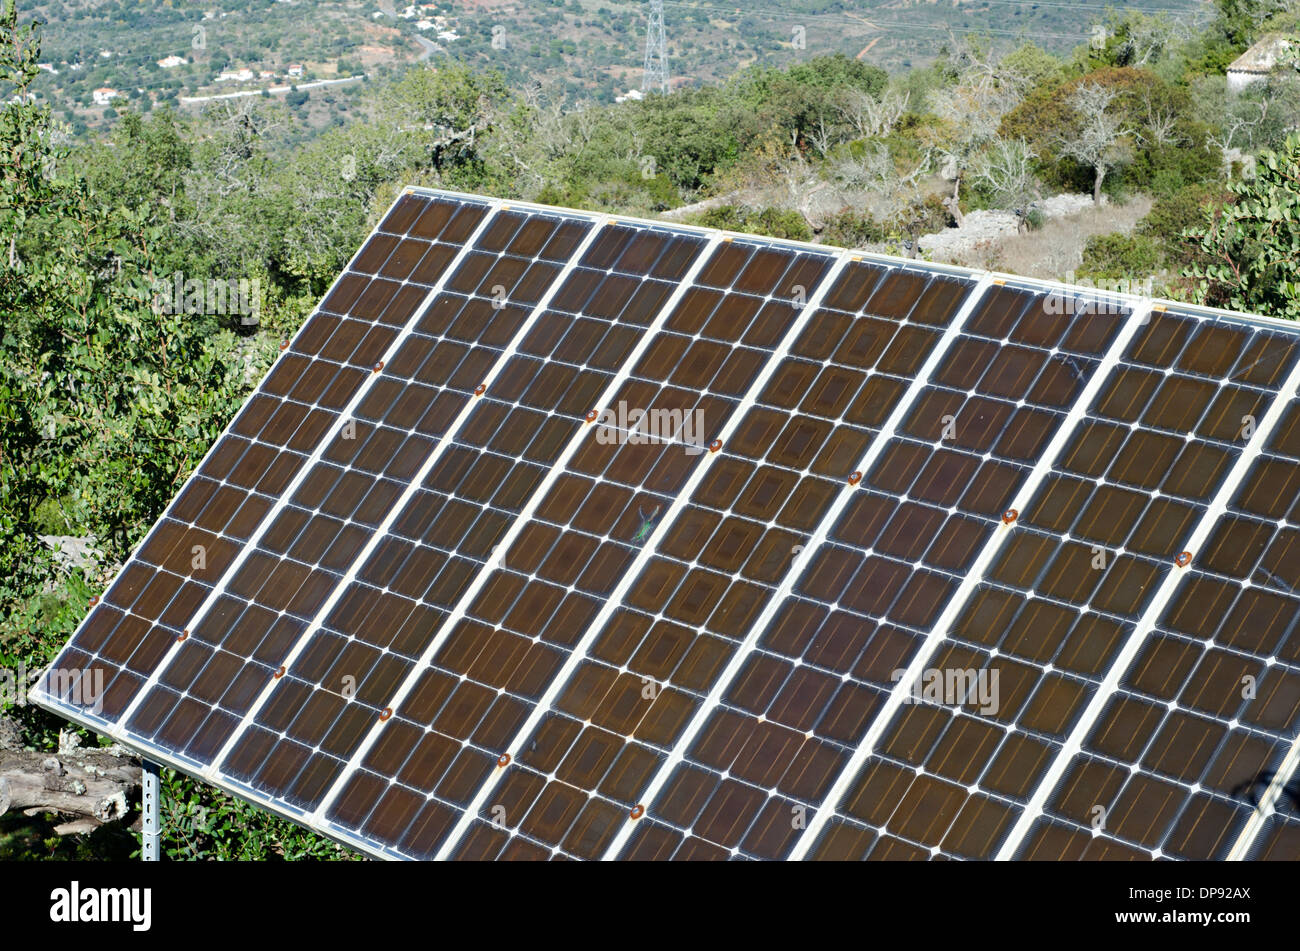 Solar Panels in countryside tree top setting. - Stock Image